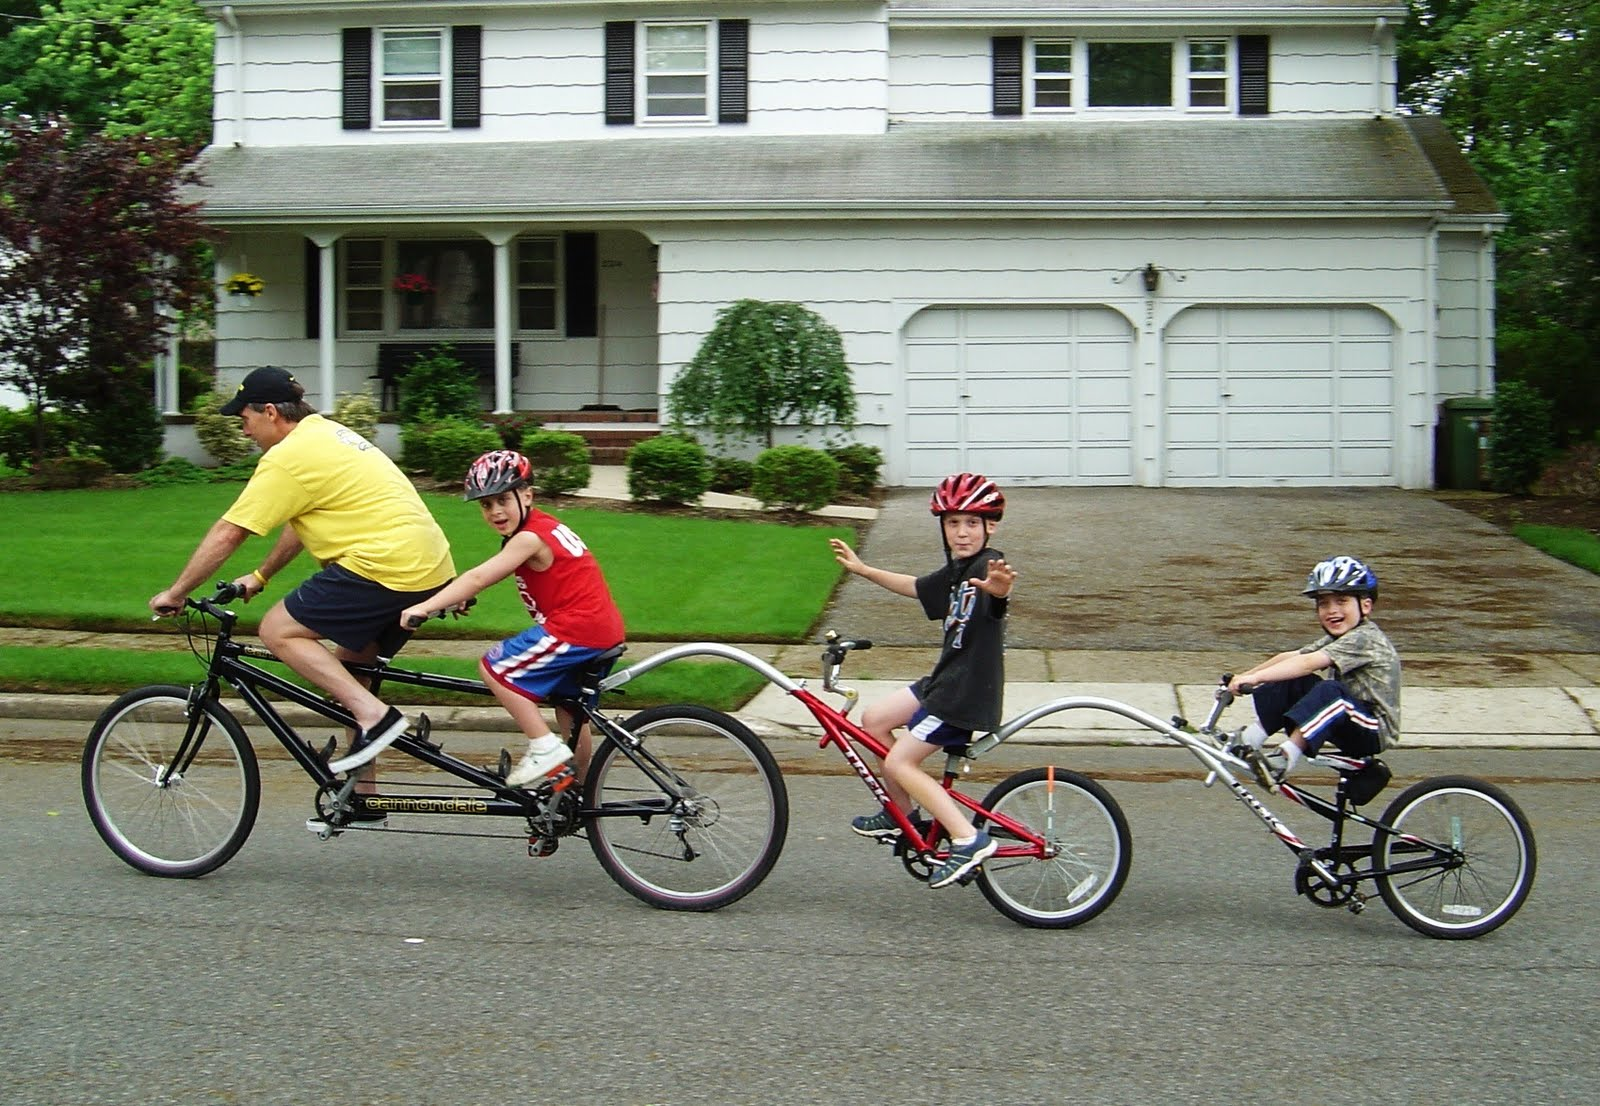 Bikes Paramus Nj Happier days in Paramus NJ